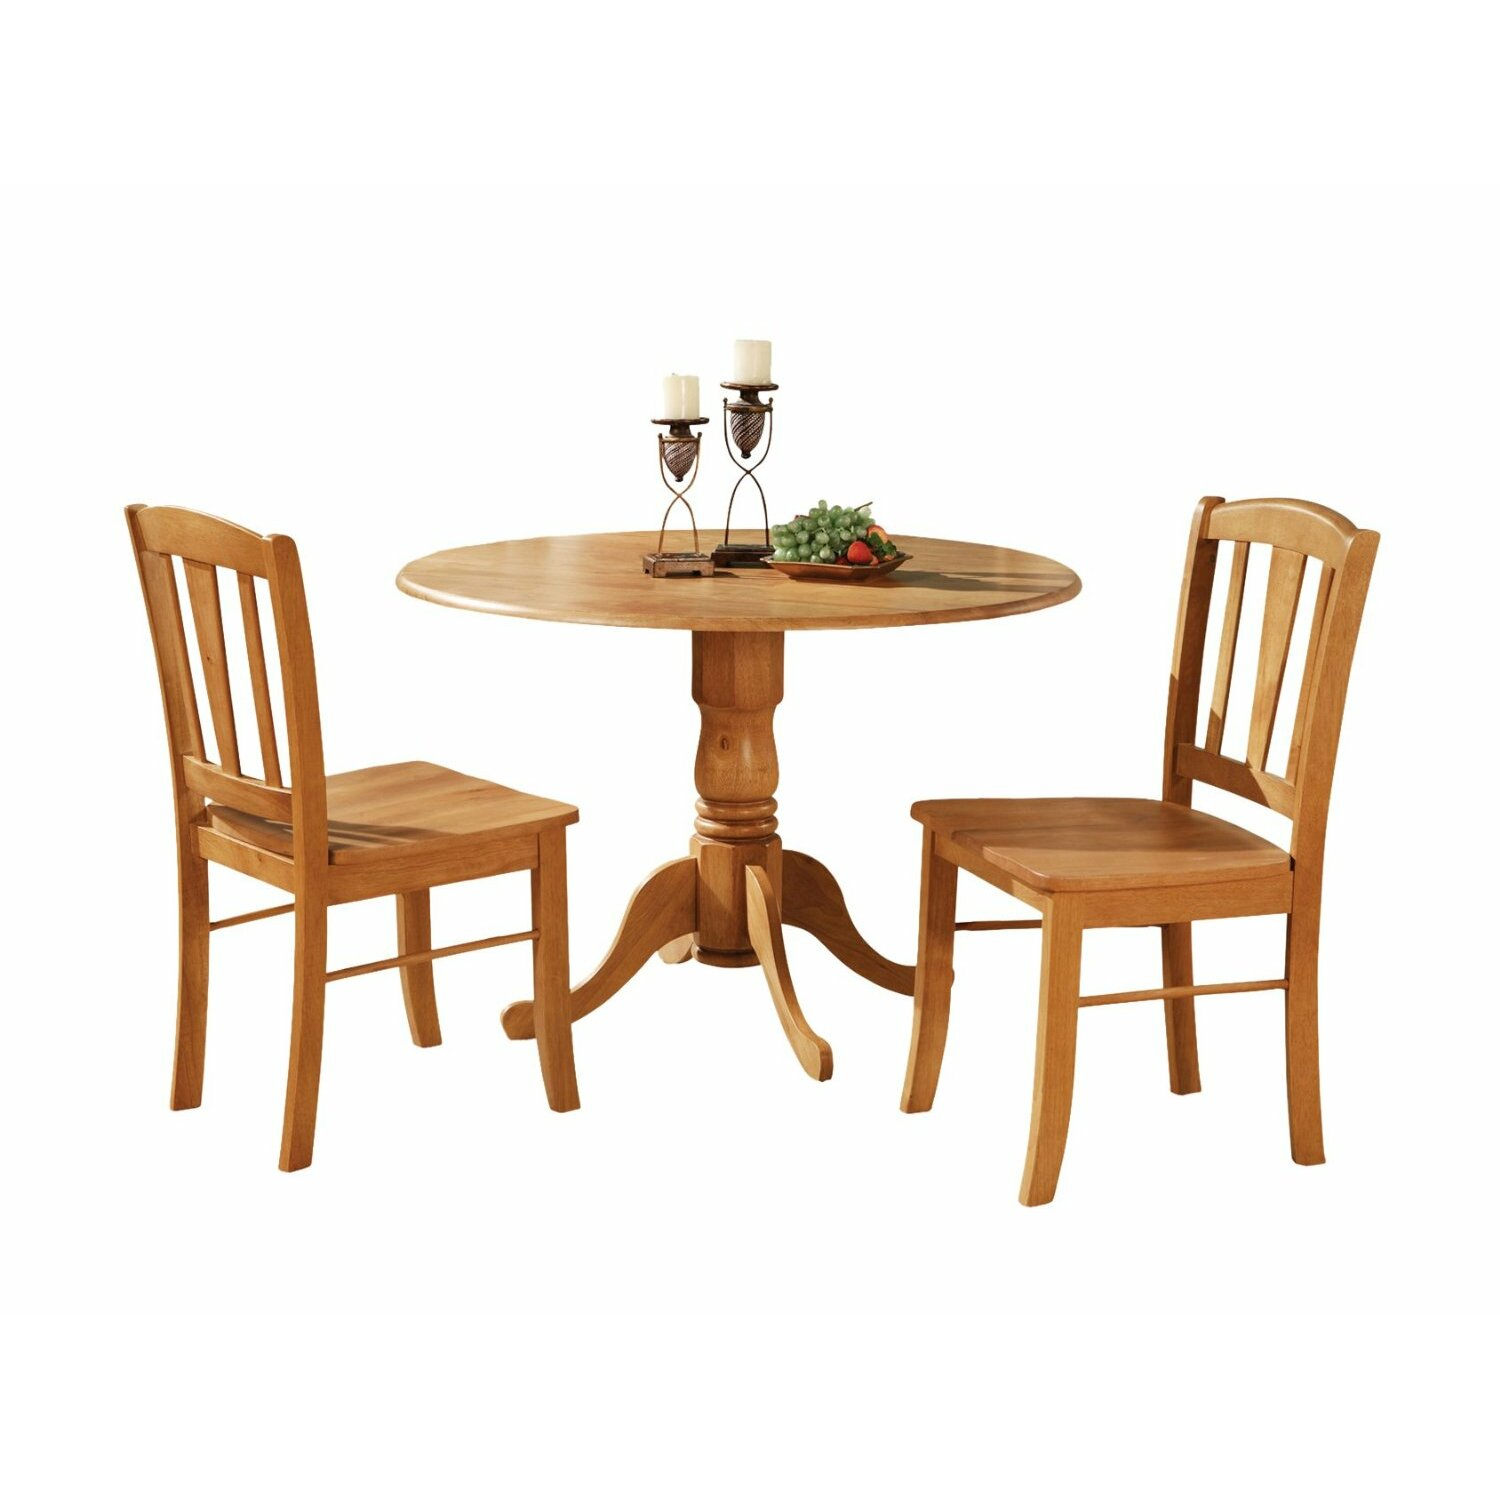 HD wallpapers dining sets for sale dublin